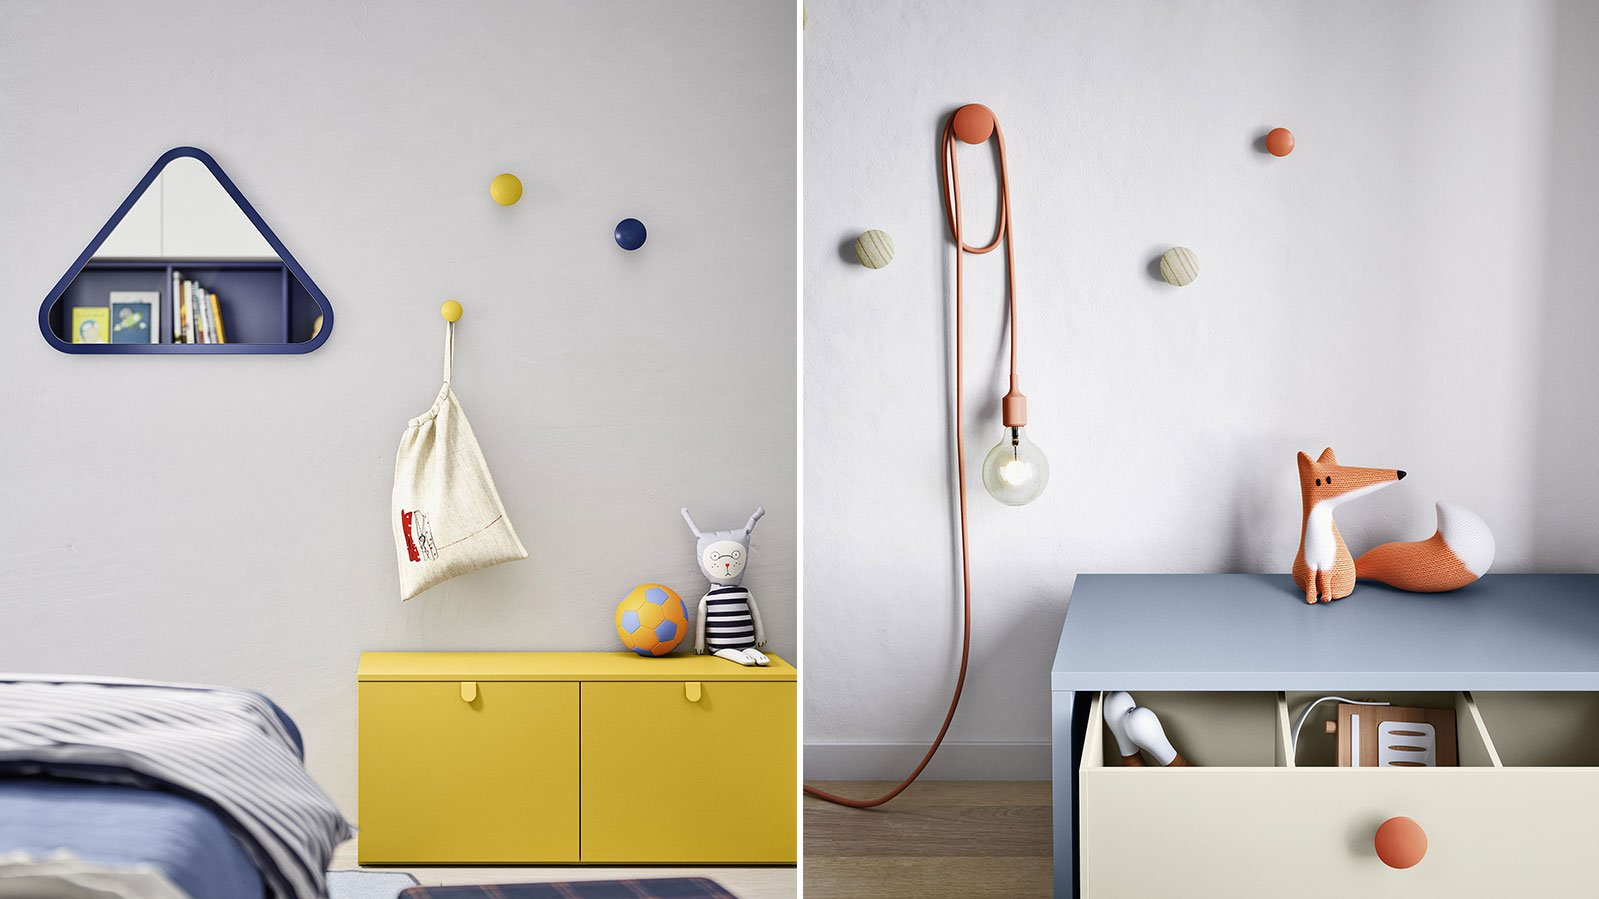 Woody clothes hanger knobs